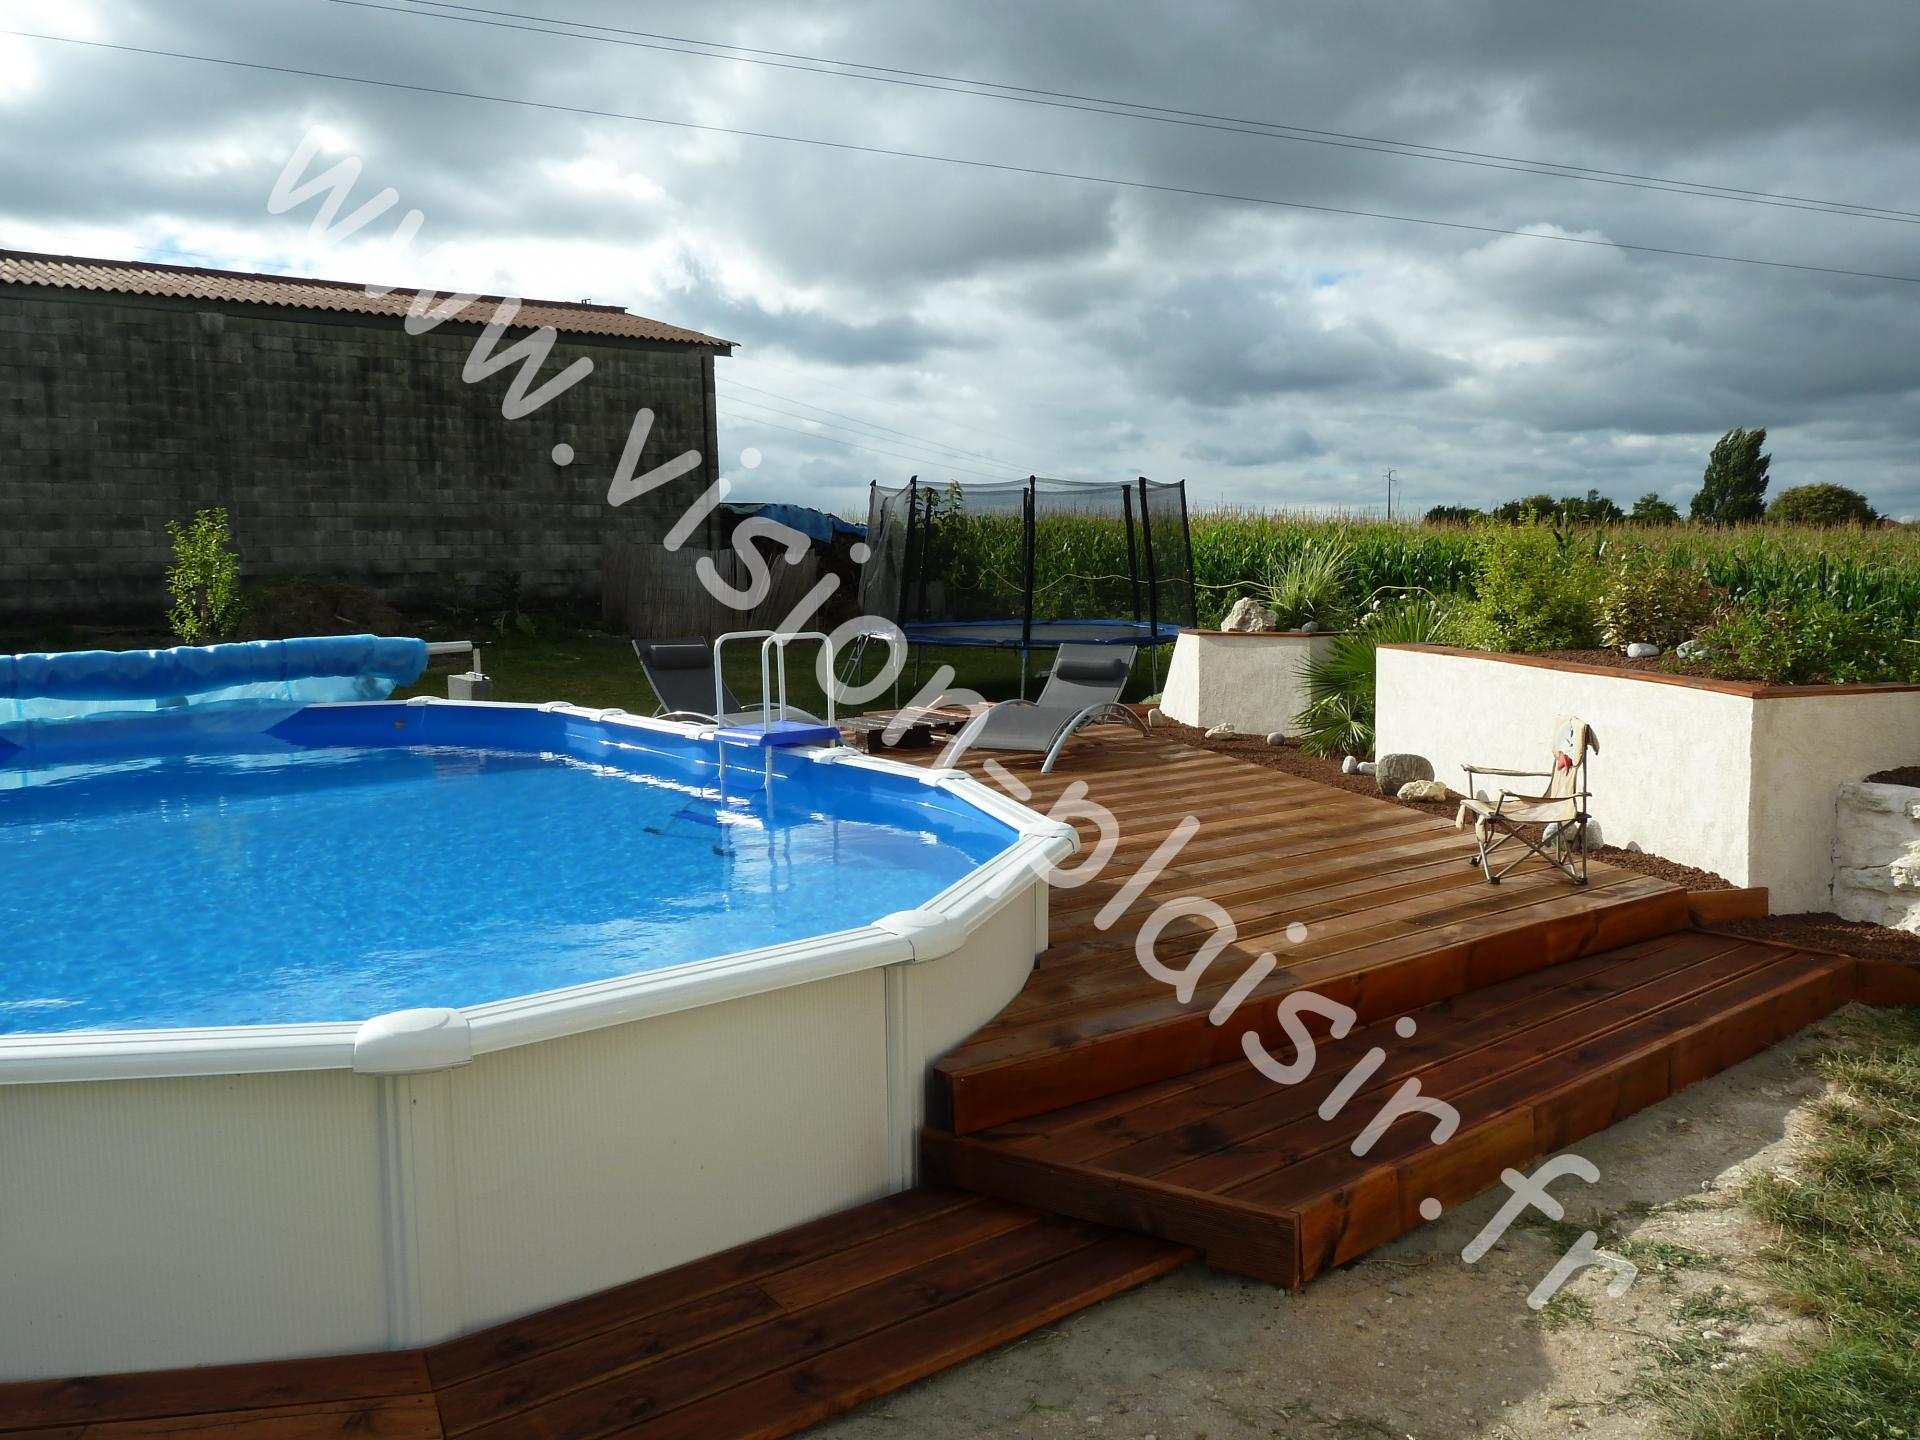 Blog de vision plaisir piscine hors sol semi enterr e for Piscine hors sol semi enterree reglementation